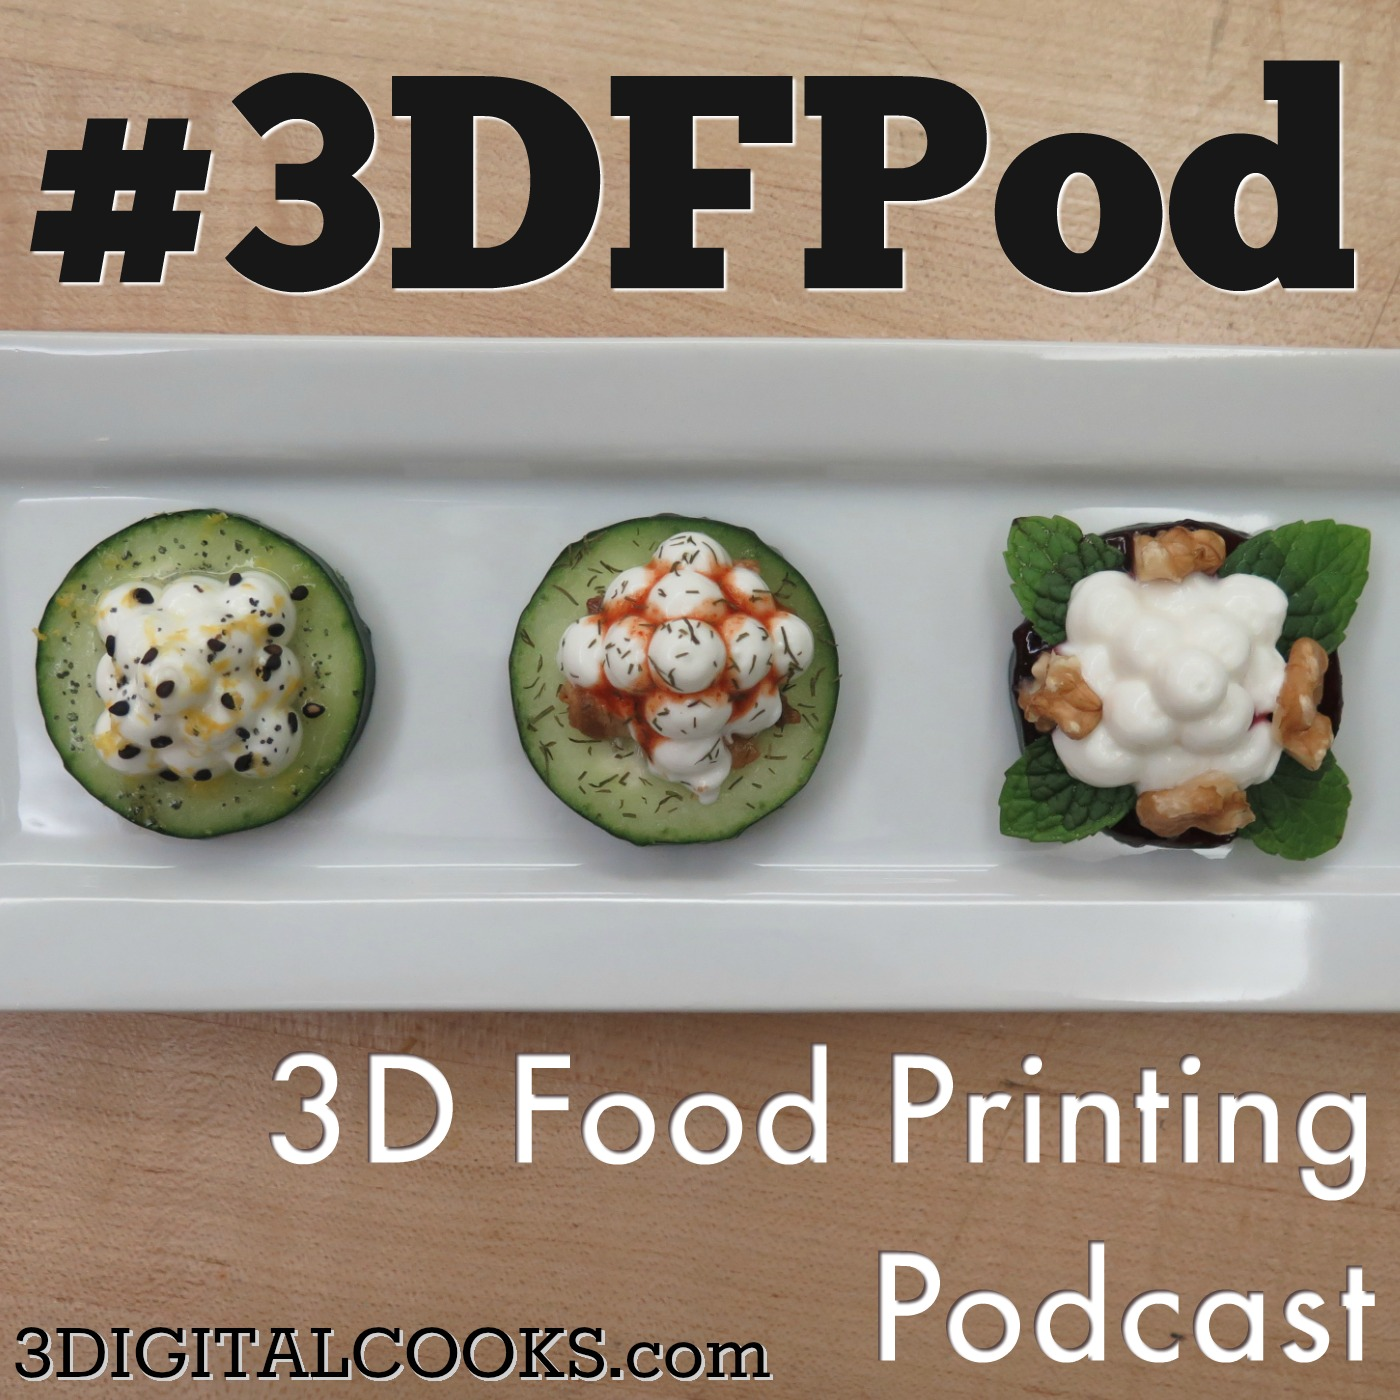 3D Food Printing Podcast Ch. 4